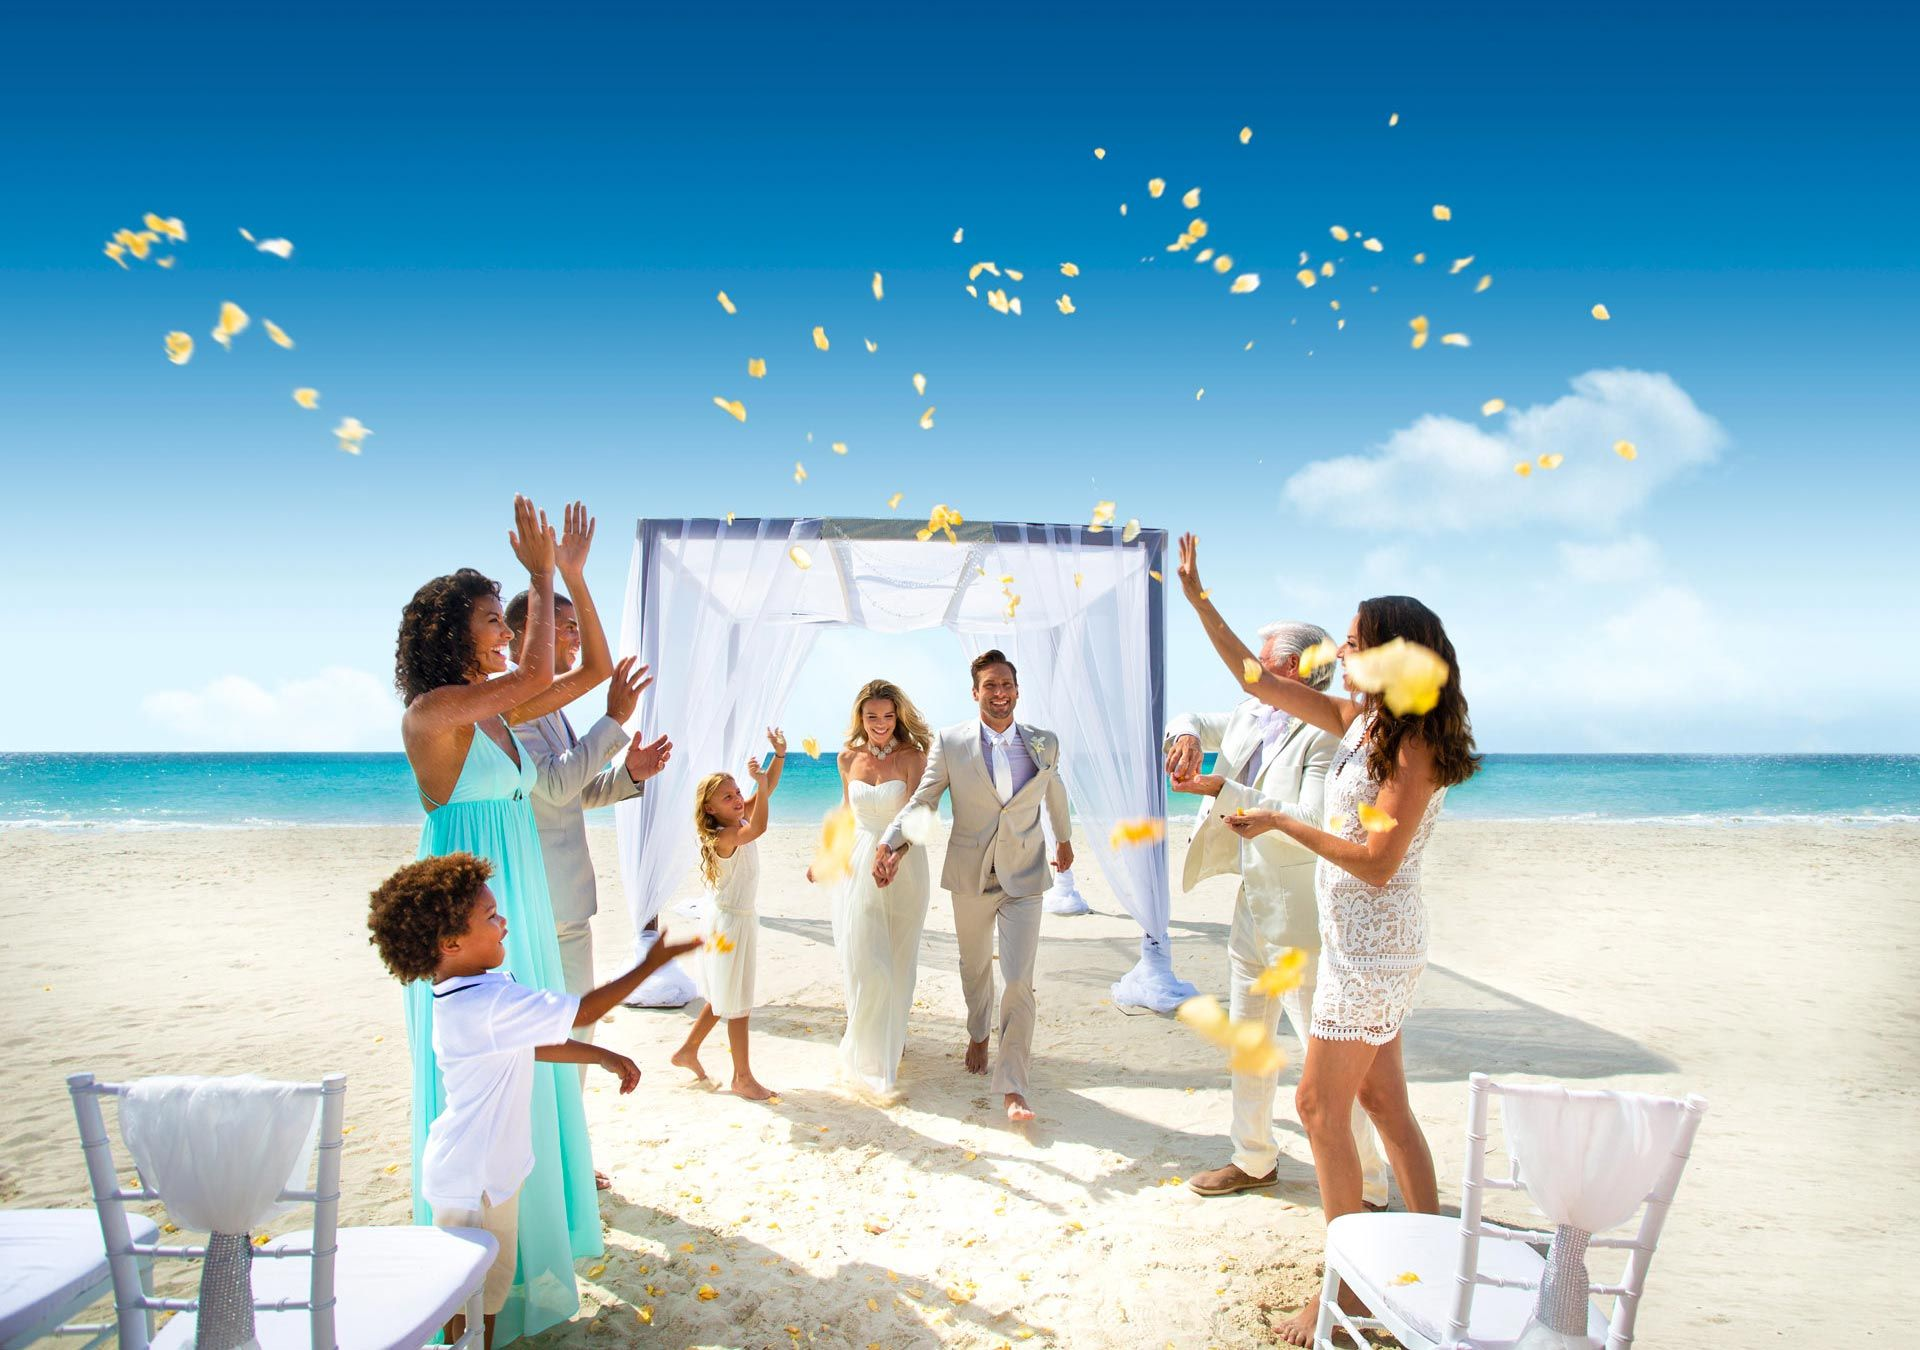 Beach Wedding: Inspiration, Venues & Tips from Experts